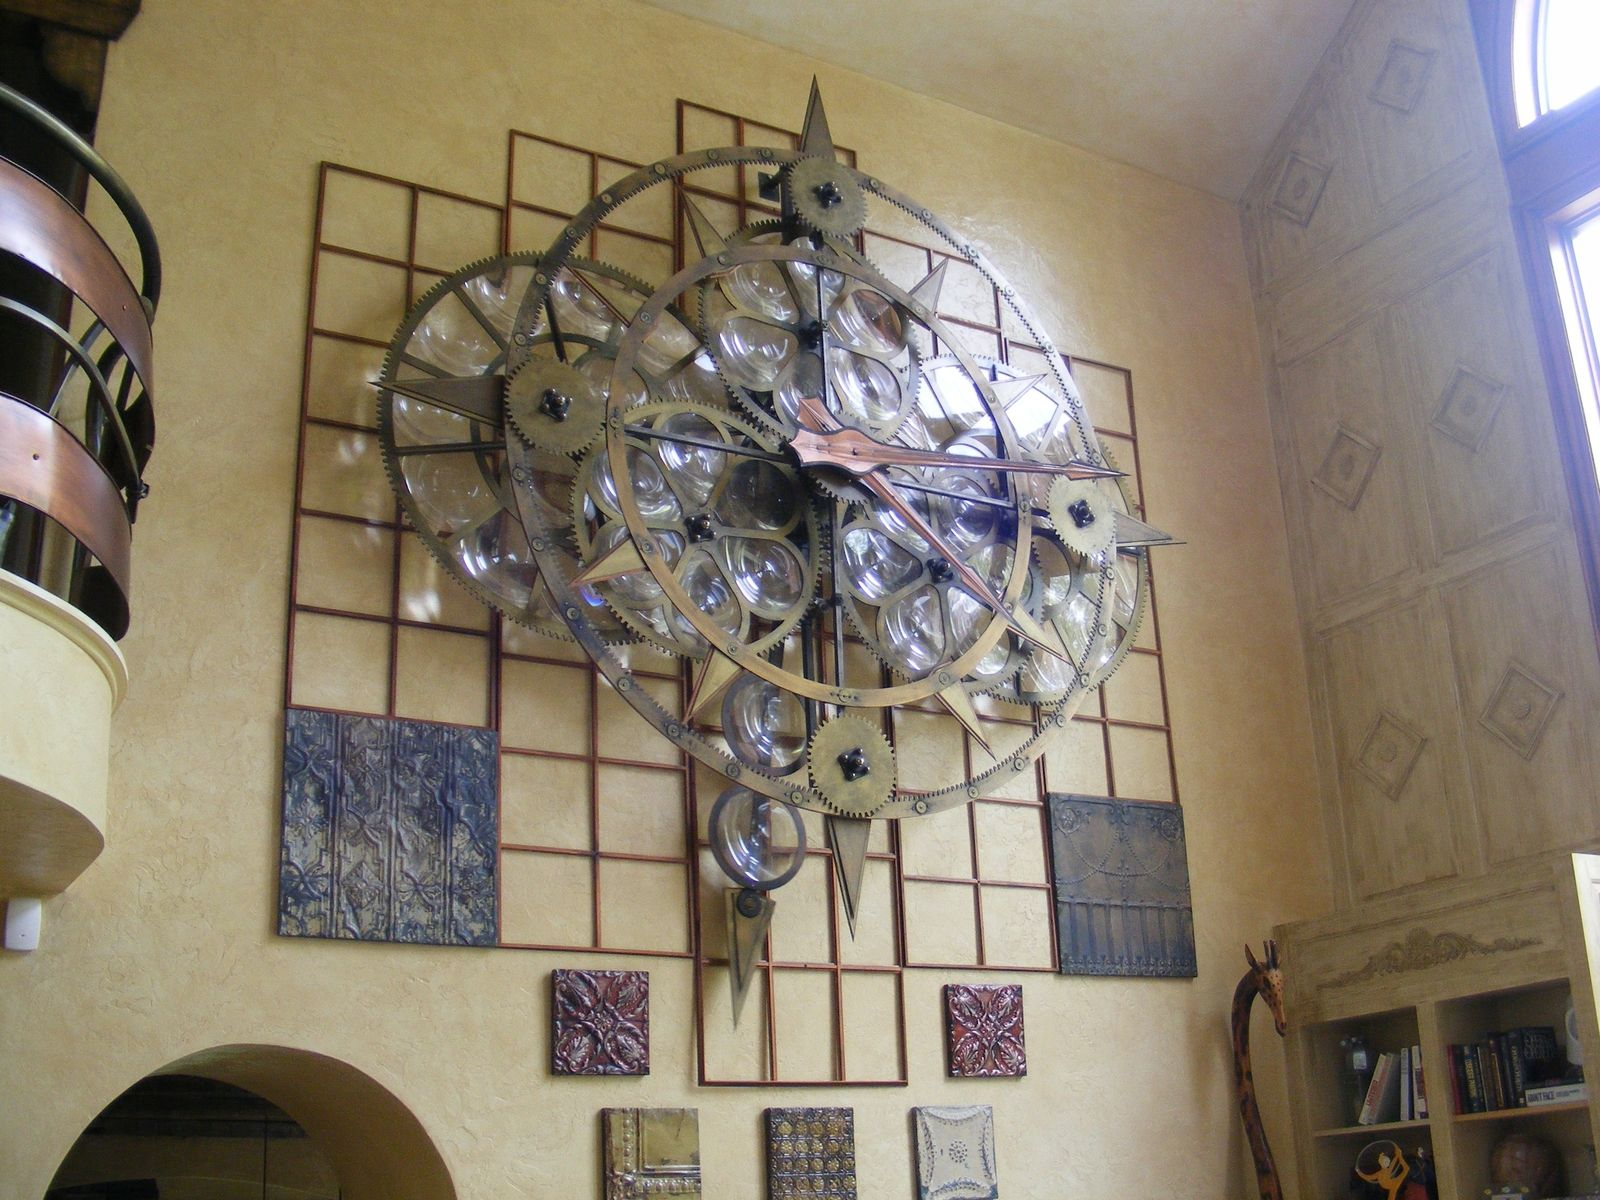 Custommade By Aaron Schroeder This Is A Large Motorized Moving Wall Sculpture Made Of Metal Plastics And M Mechanical Wall Clock Moving Walls Wall Sculptures